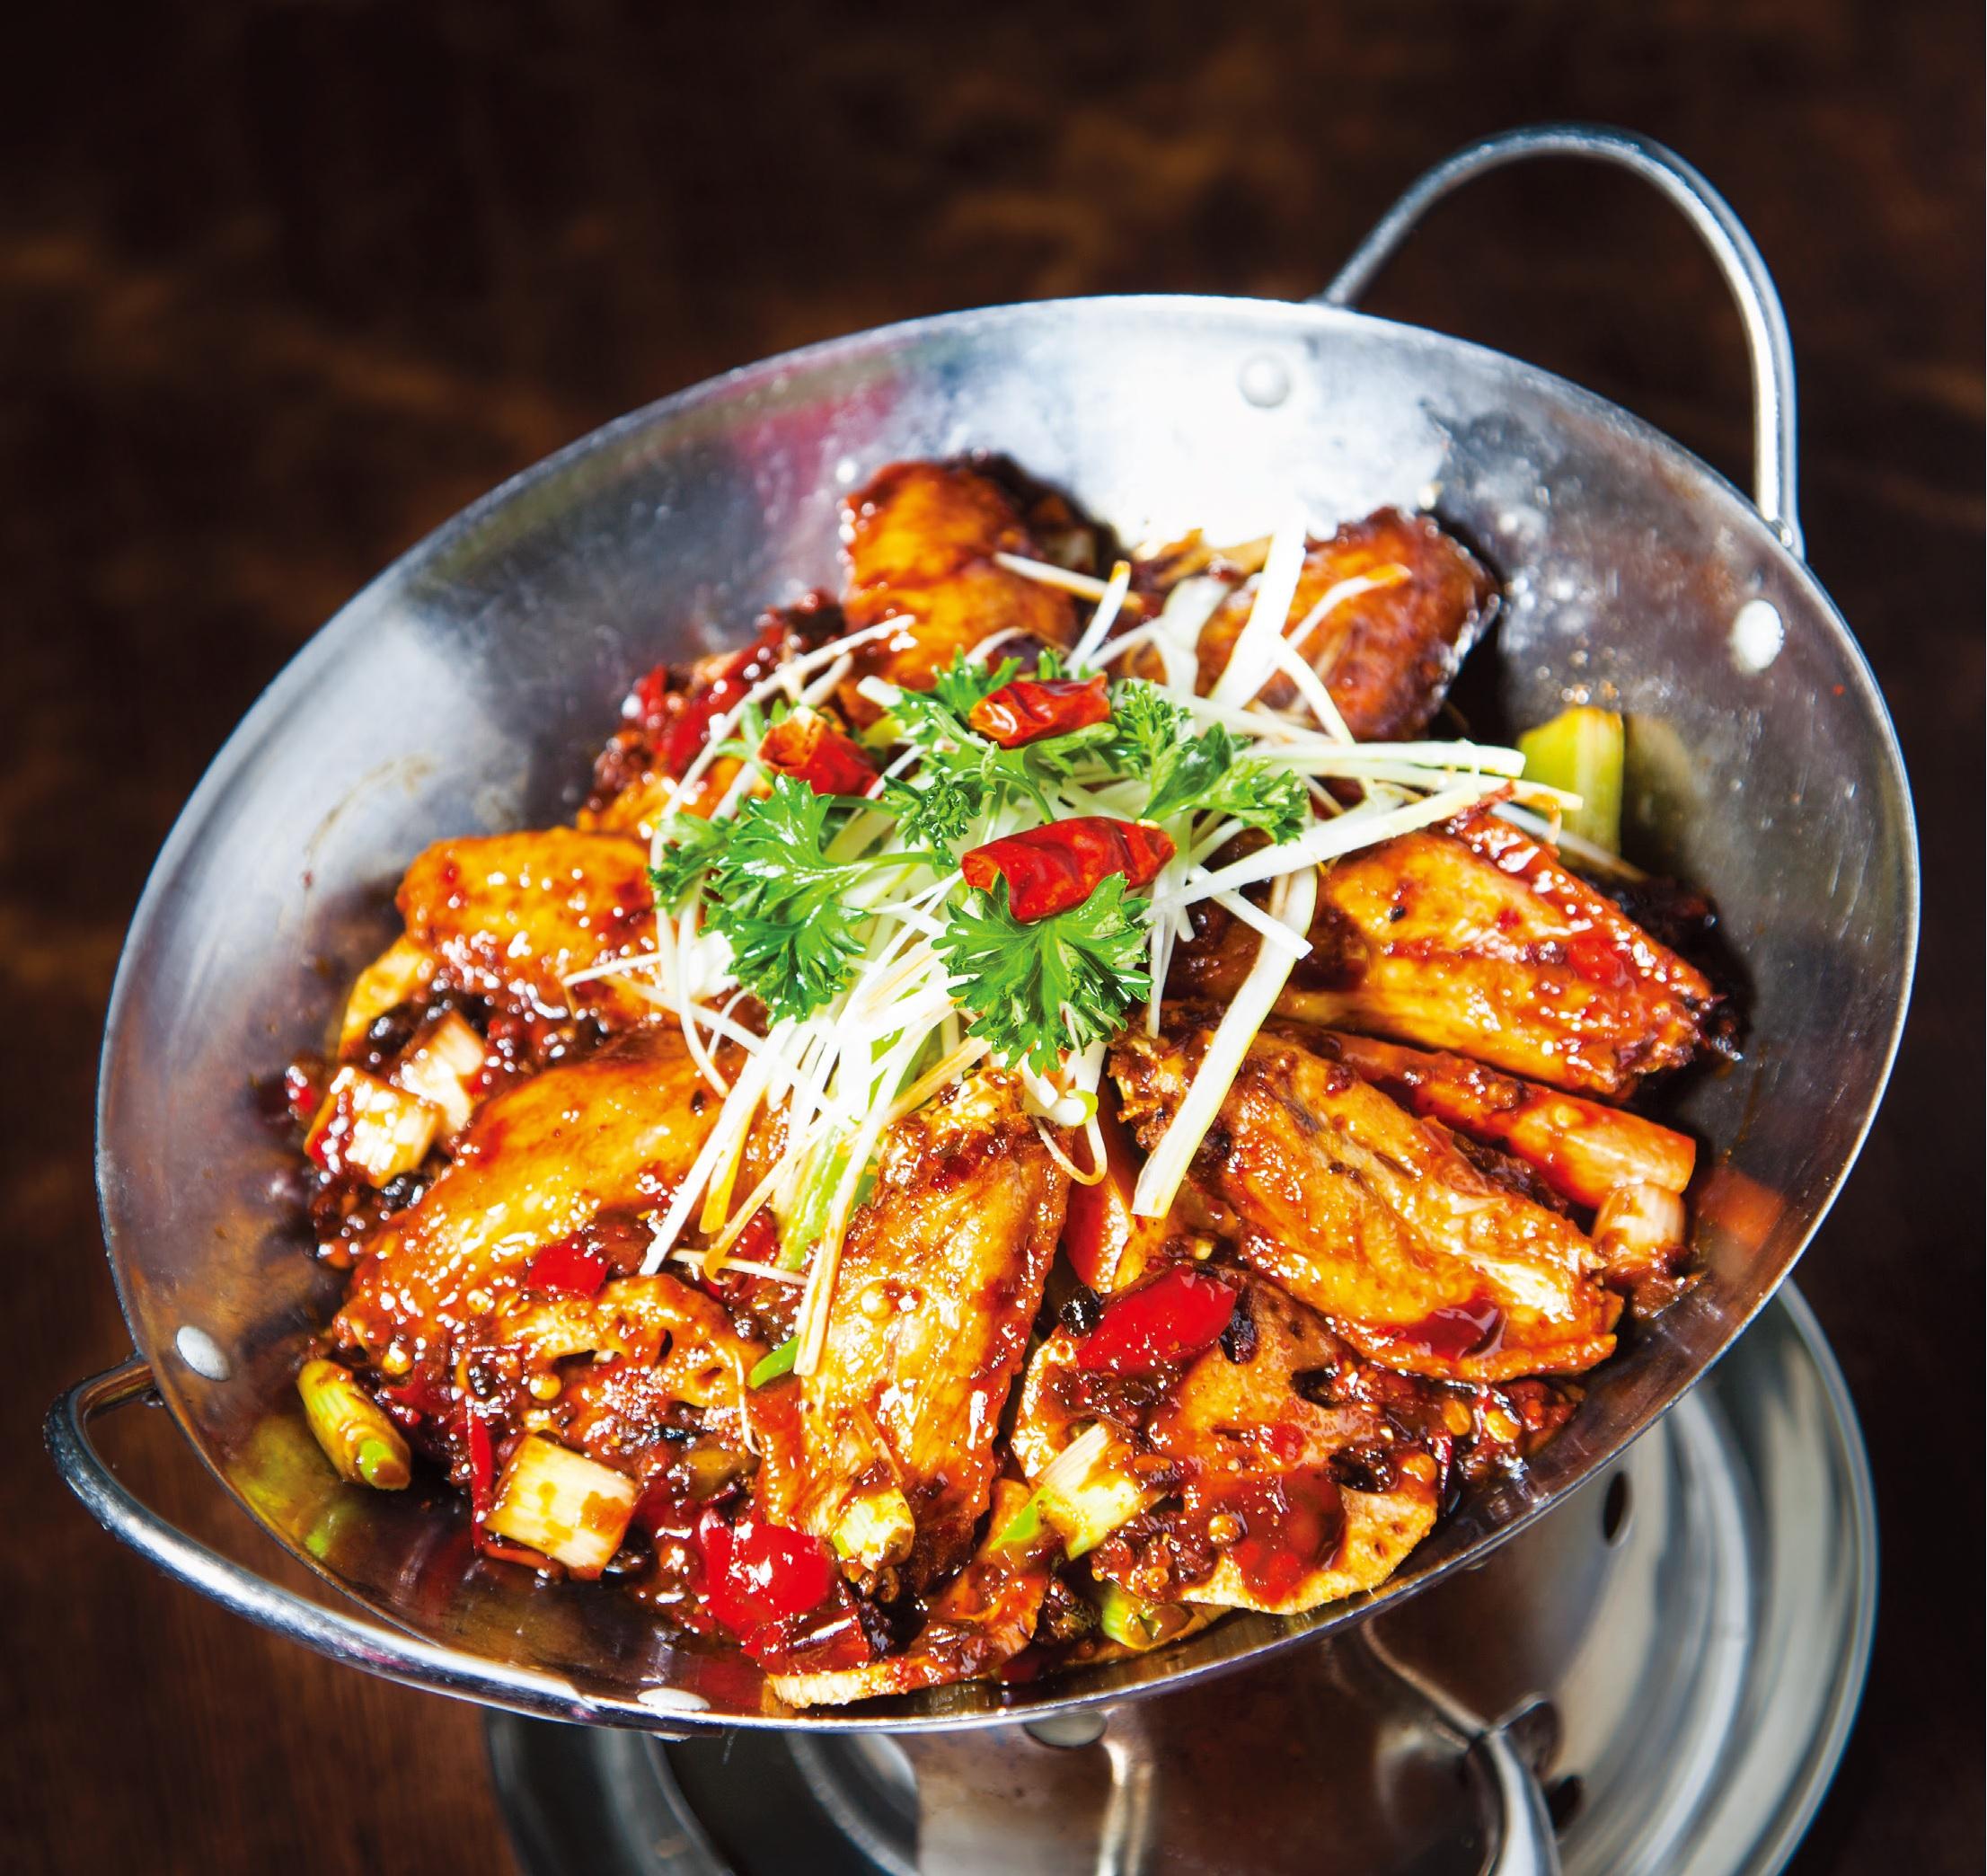 Stir fried spicy chicken wings